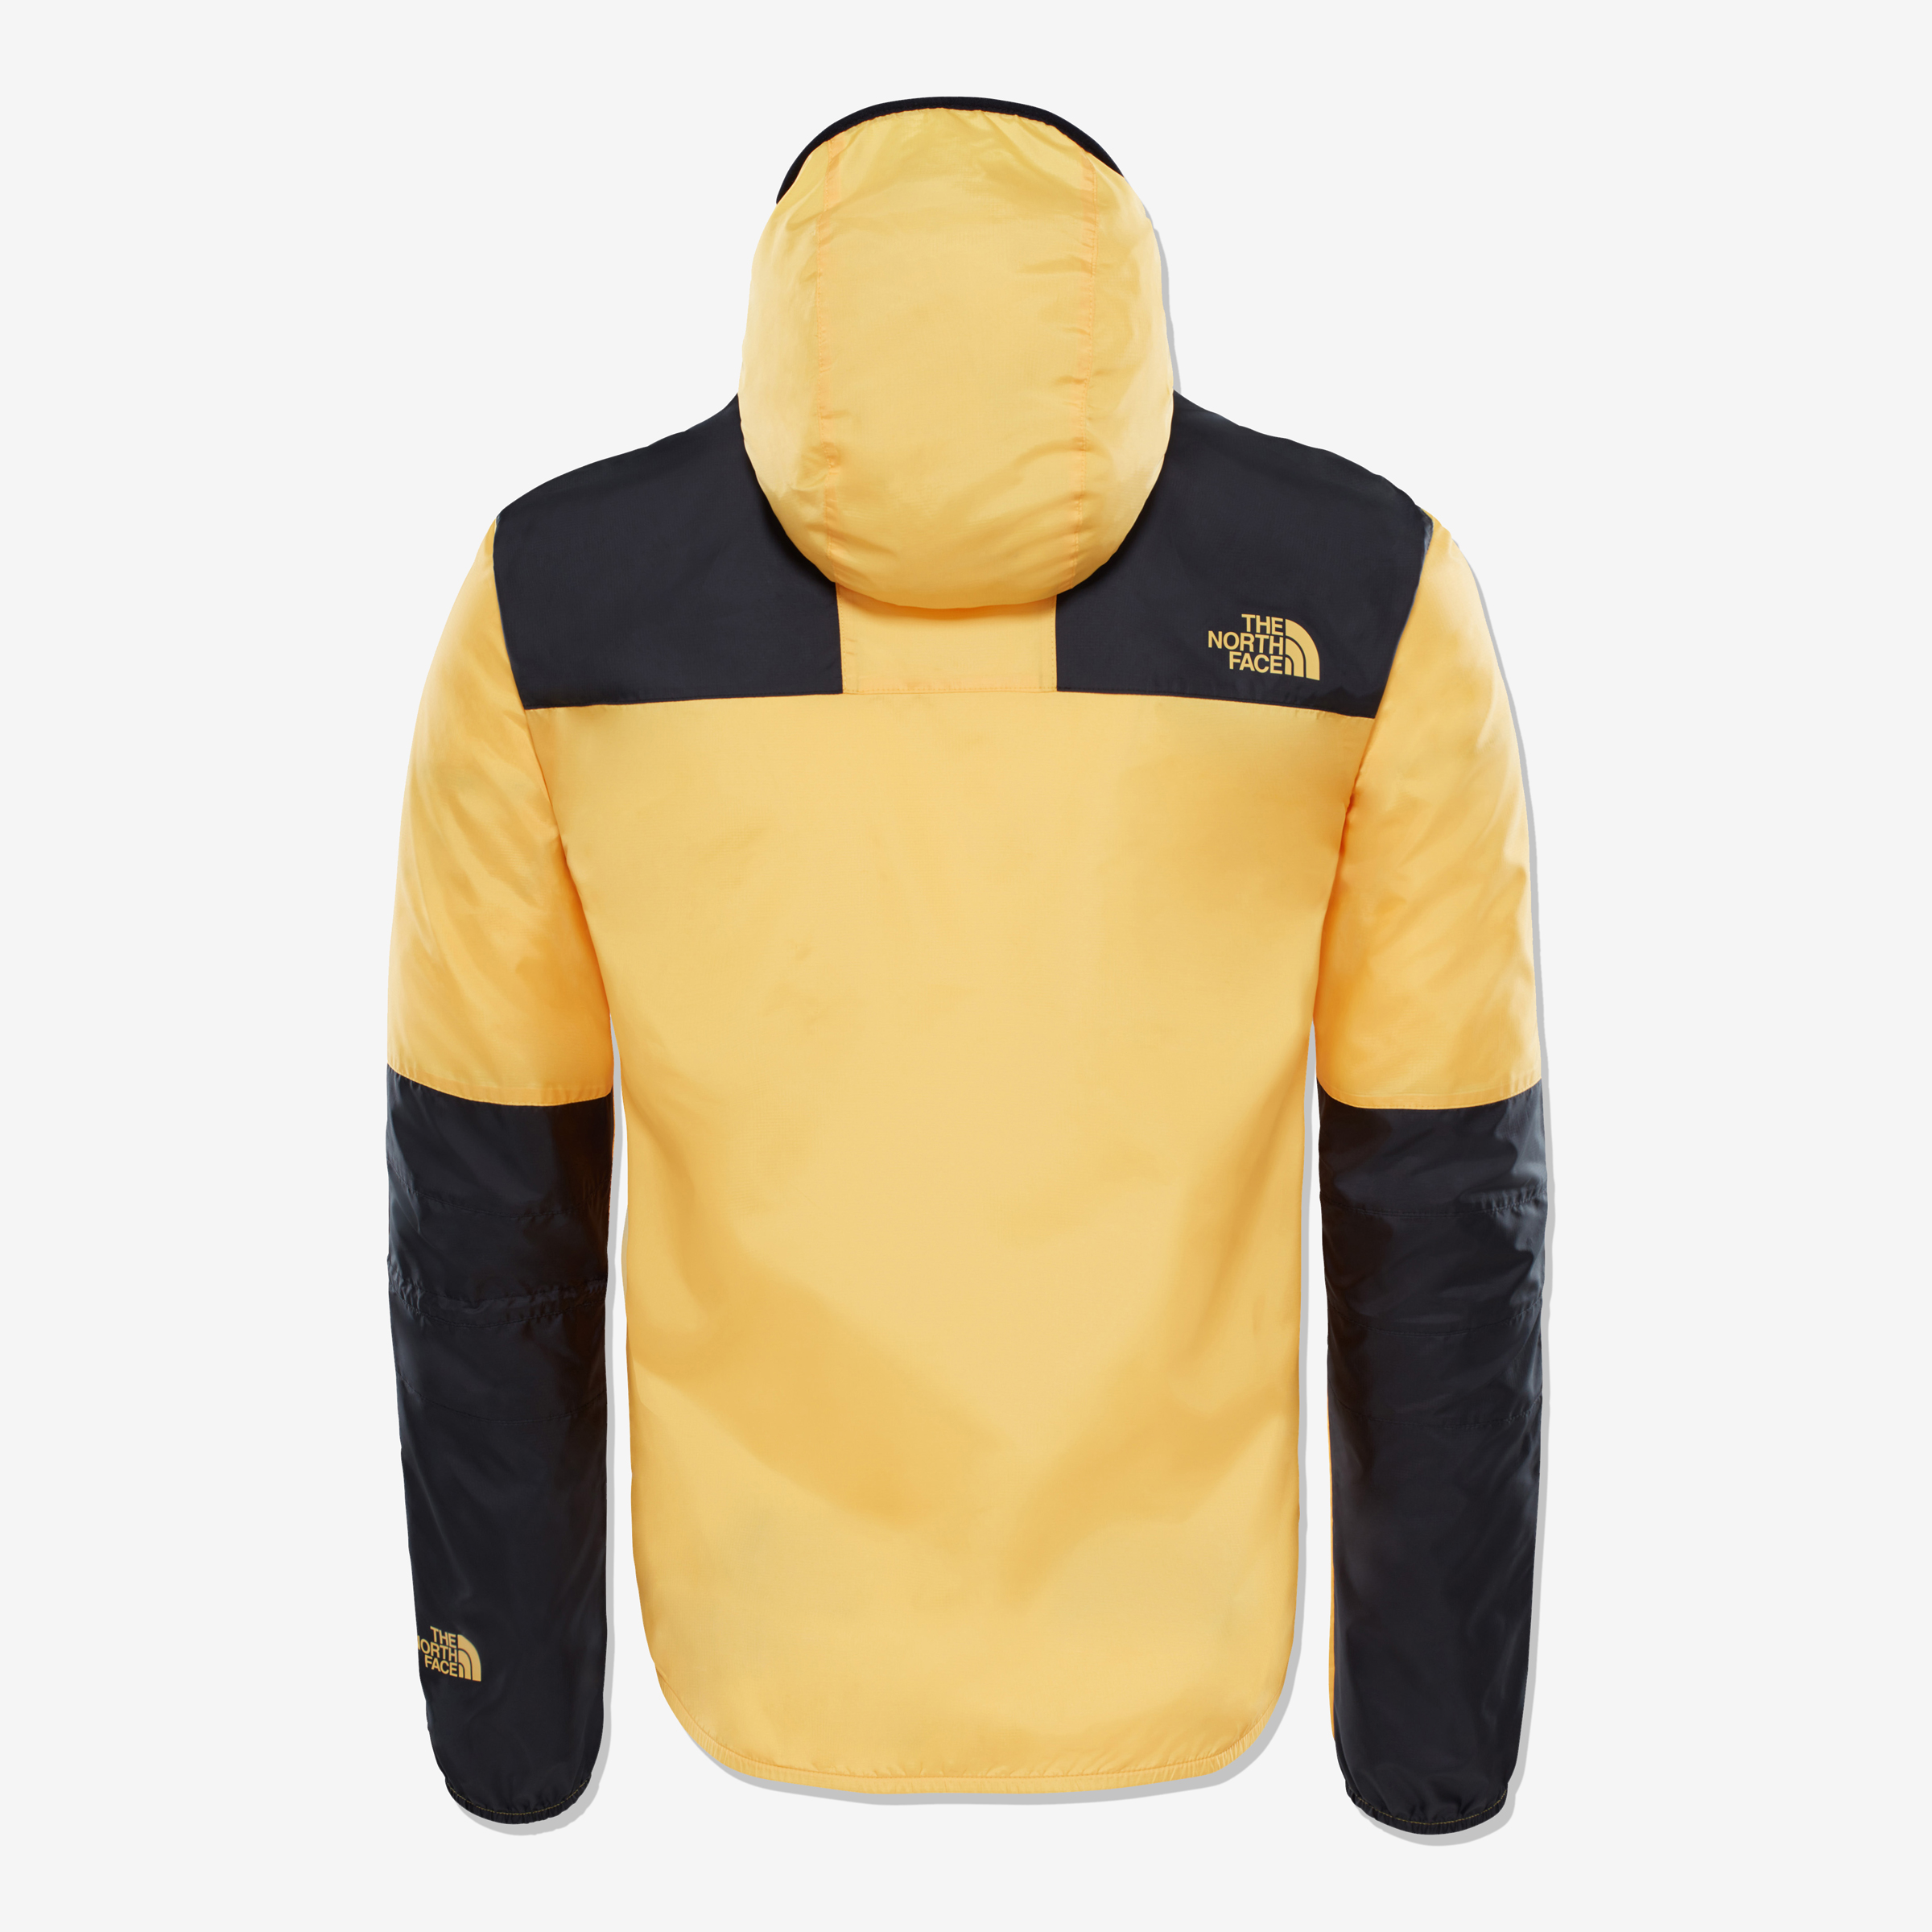 8716af23 Buy The North Face 1985 MOUNTAIN JACKET - Yellow Black | T0CH37